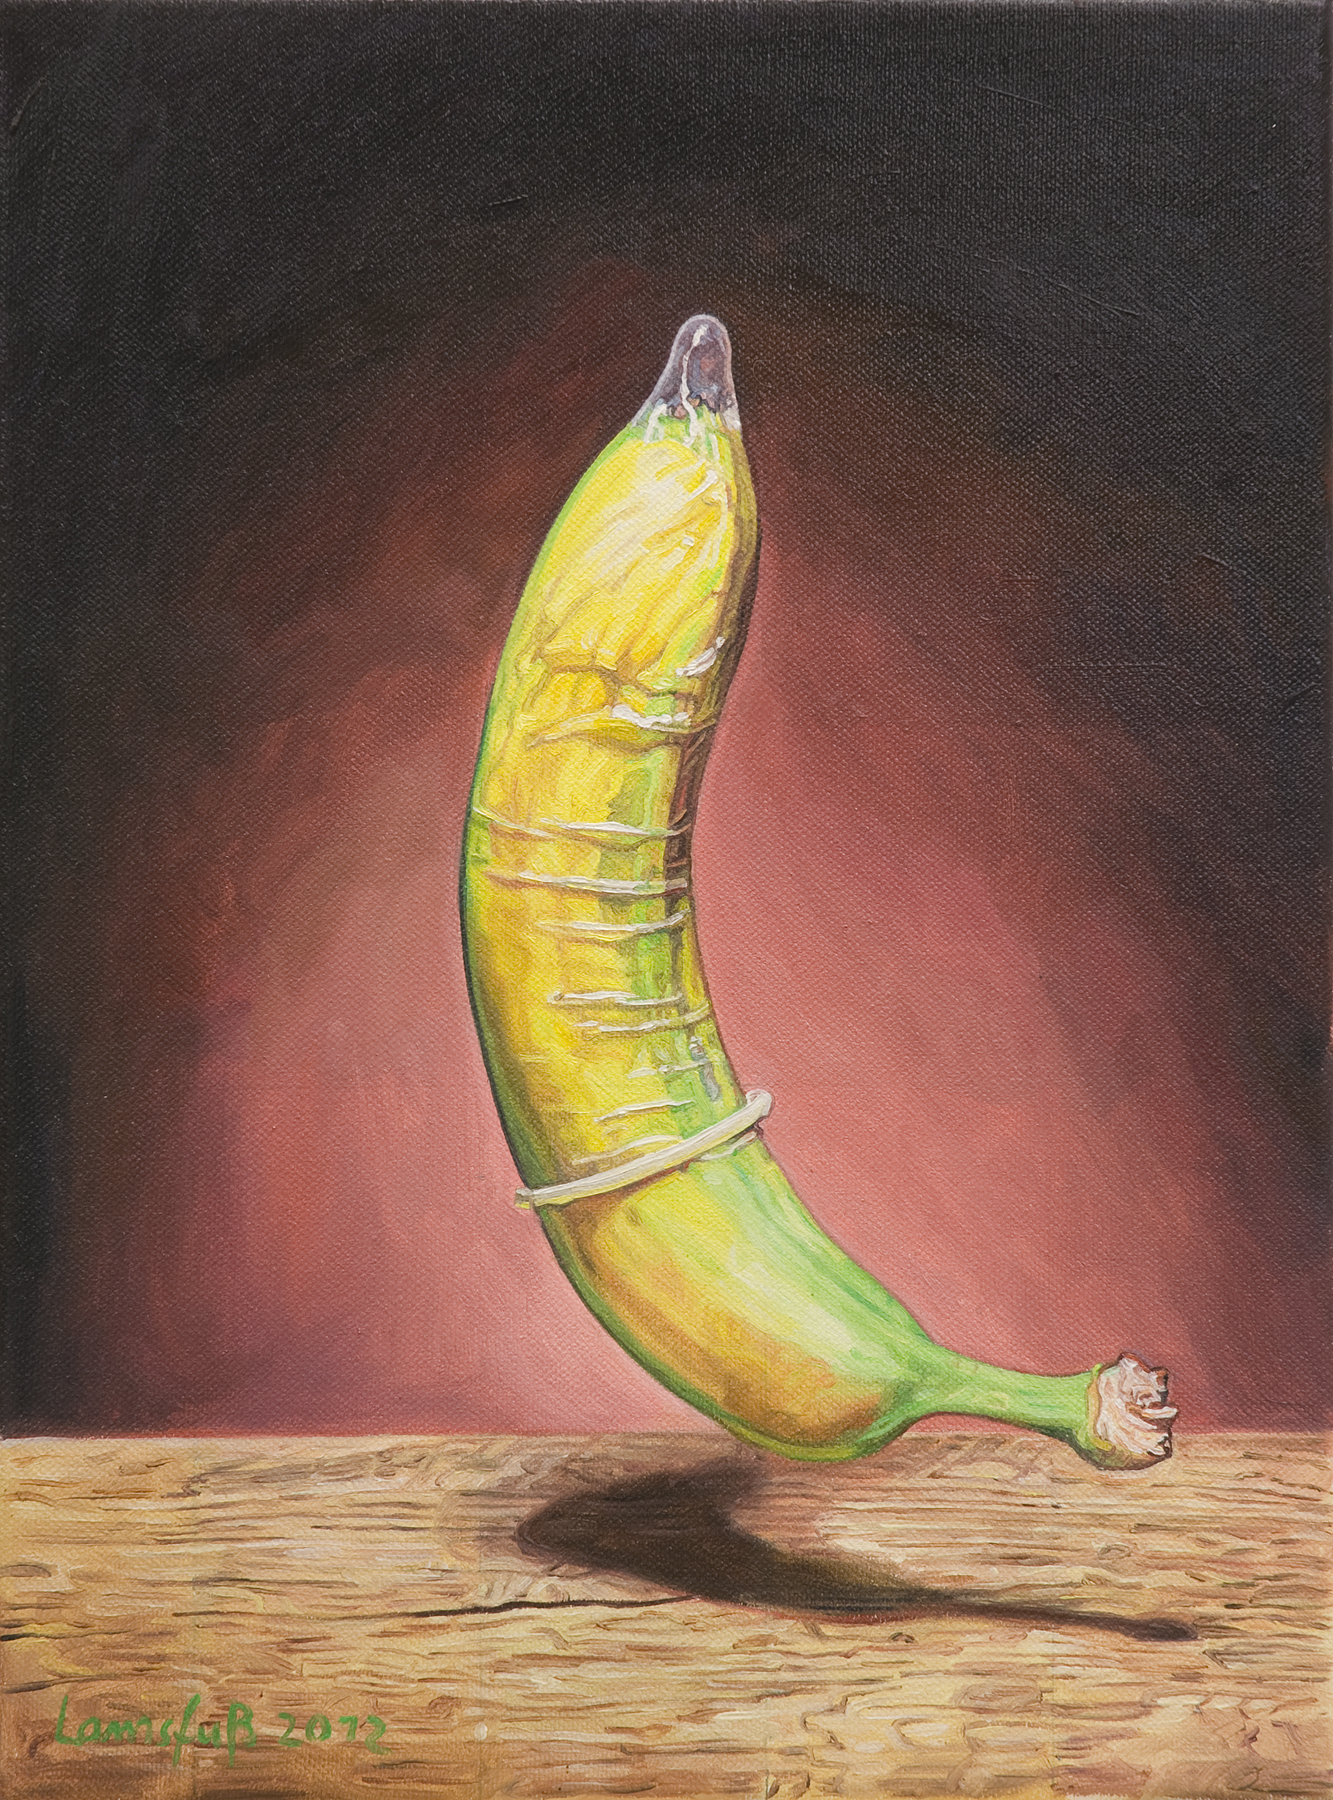 Ulrich Lamsfuss   Anthony Bradshaw, Banana (getty im. #105065566)  , 2012   oil on canvas   13.78 x 10.24 inches   35 x 26 cm